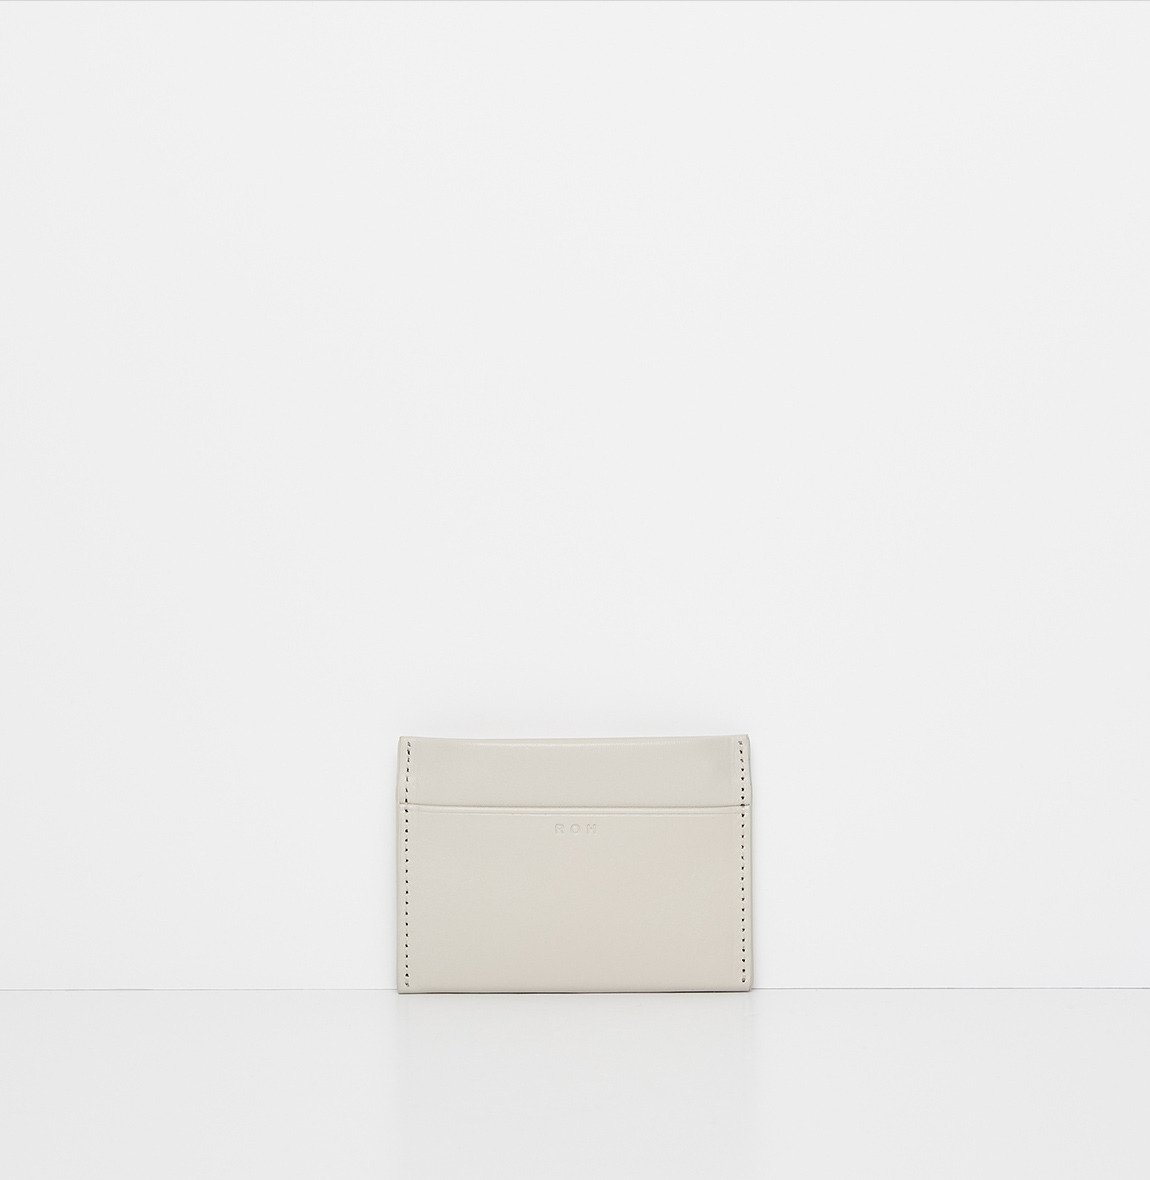 ROH Coin wallet objet 1 Ivory